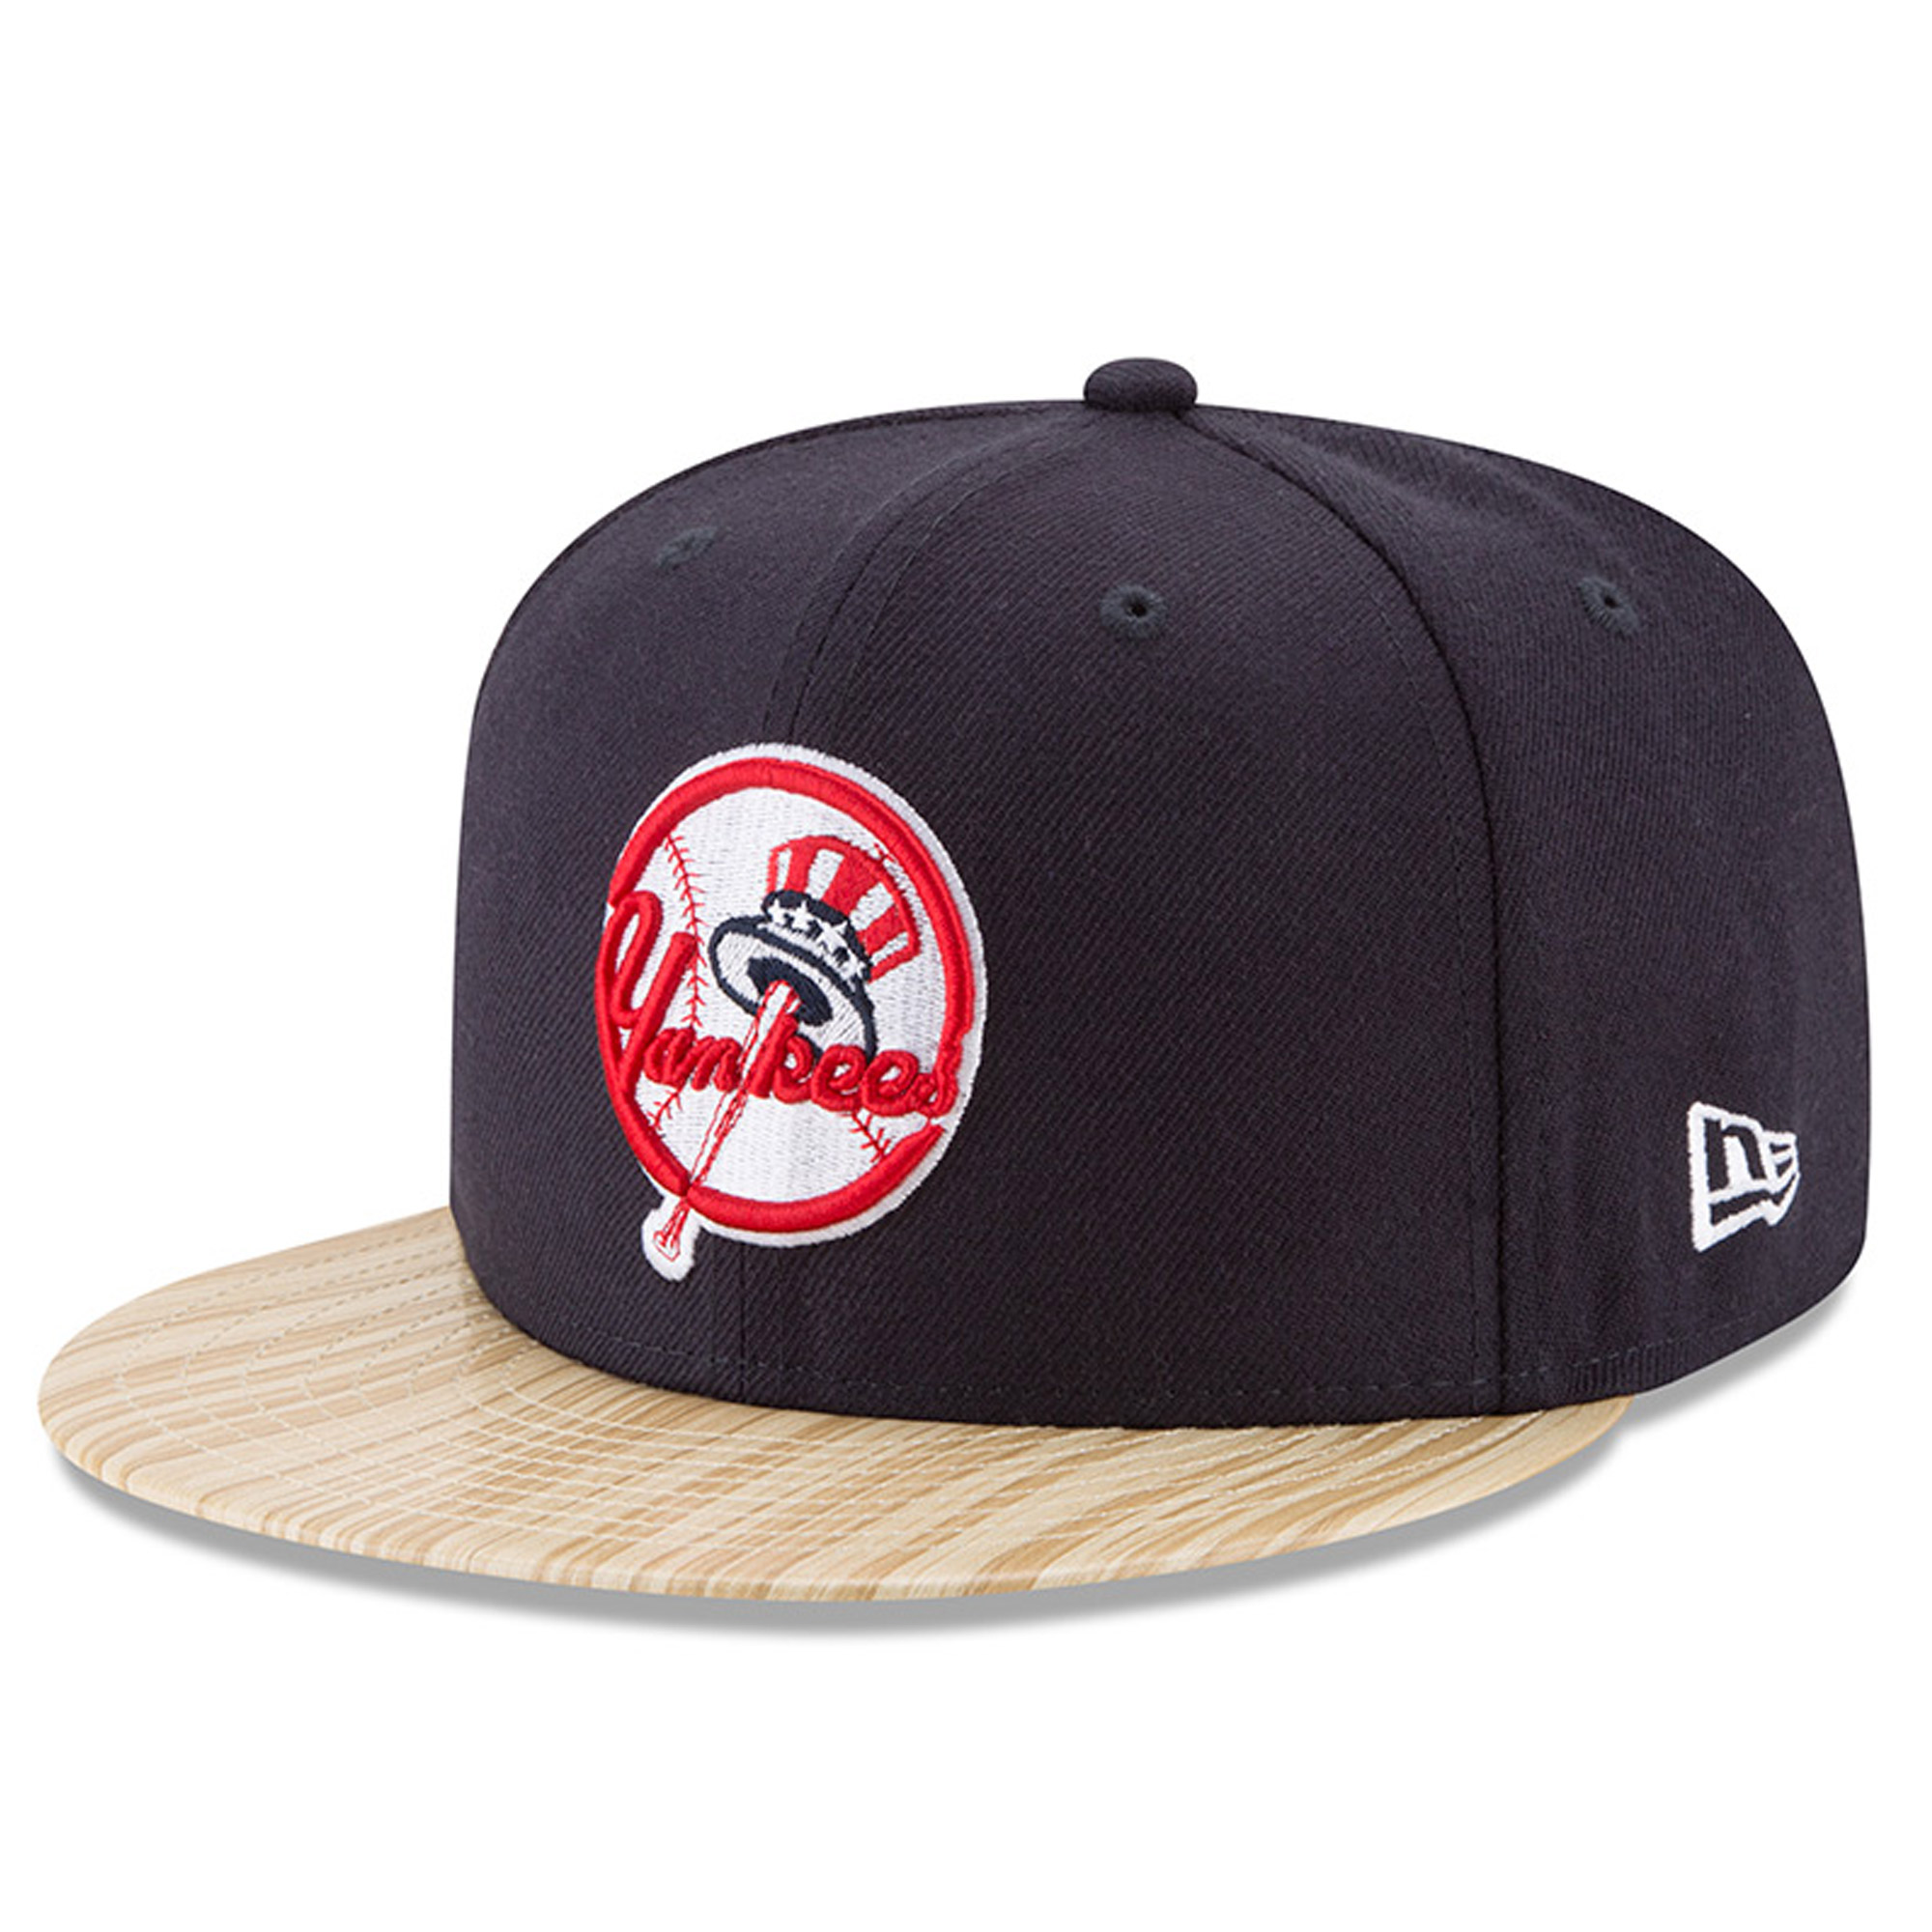 New York Yankees New Era 1987 Topps Collaboration 9FIFTY Adjustable Hat - Navy/Tan - OSFA